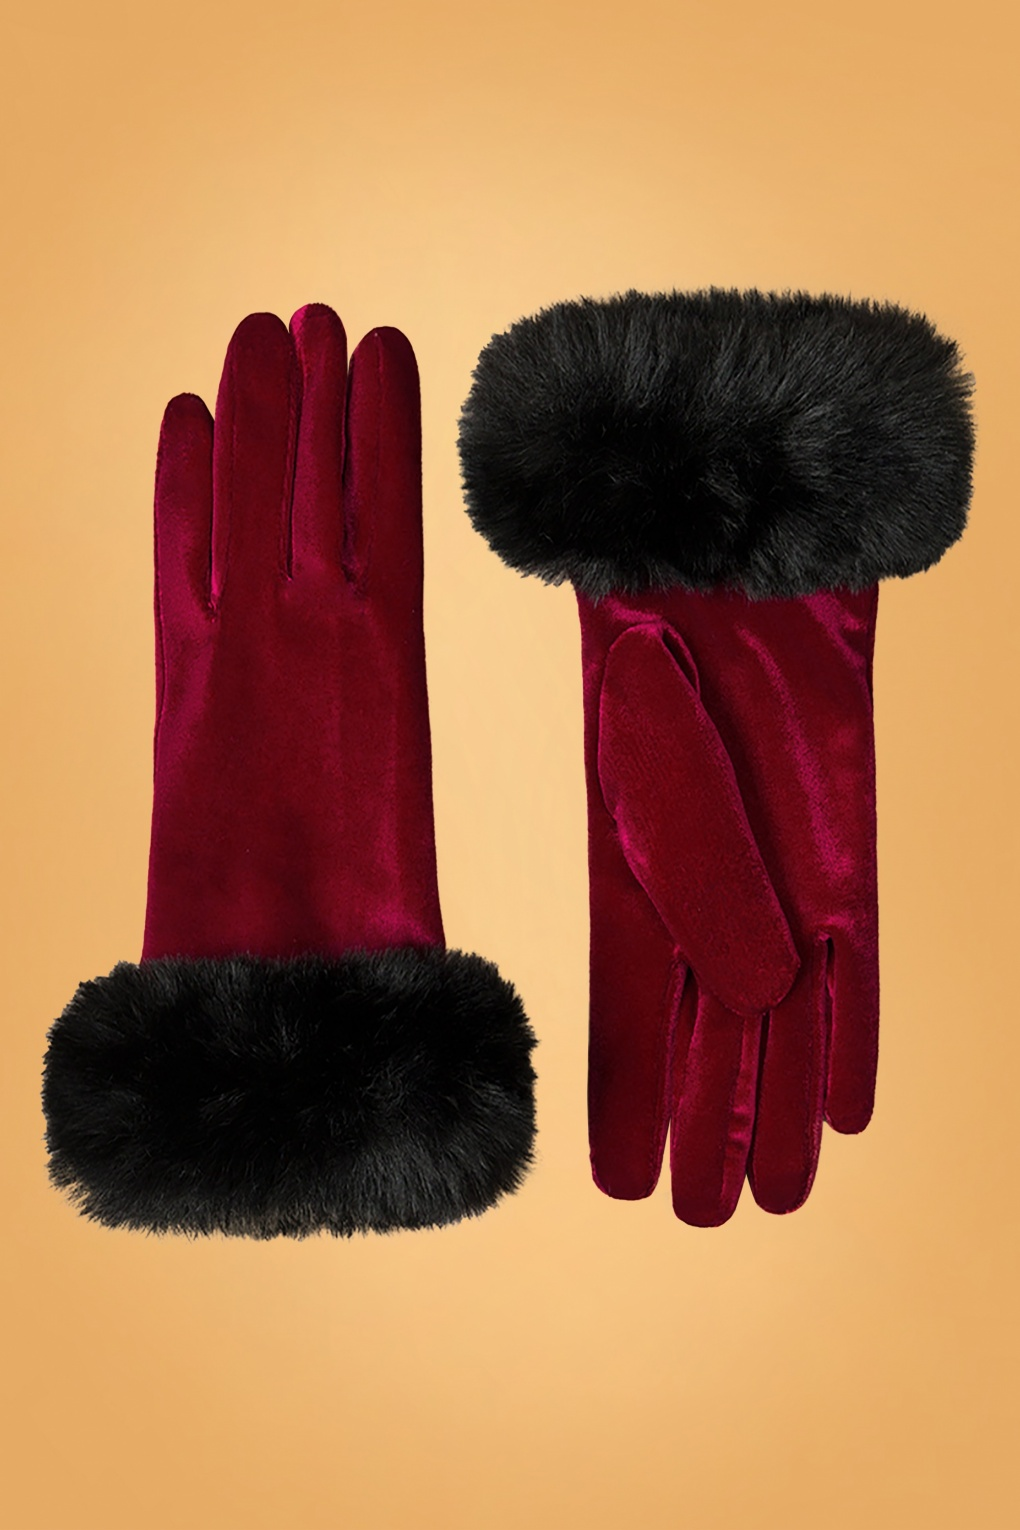 Vintage Style Gloves- Long, Wrist, Evening, Day, Leather, Lace 50s Valentina Velvet Gloves in Bordeaux £22.40 AT vintagedancer.com